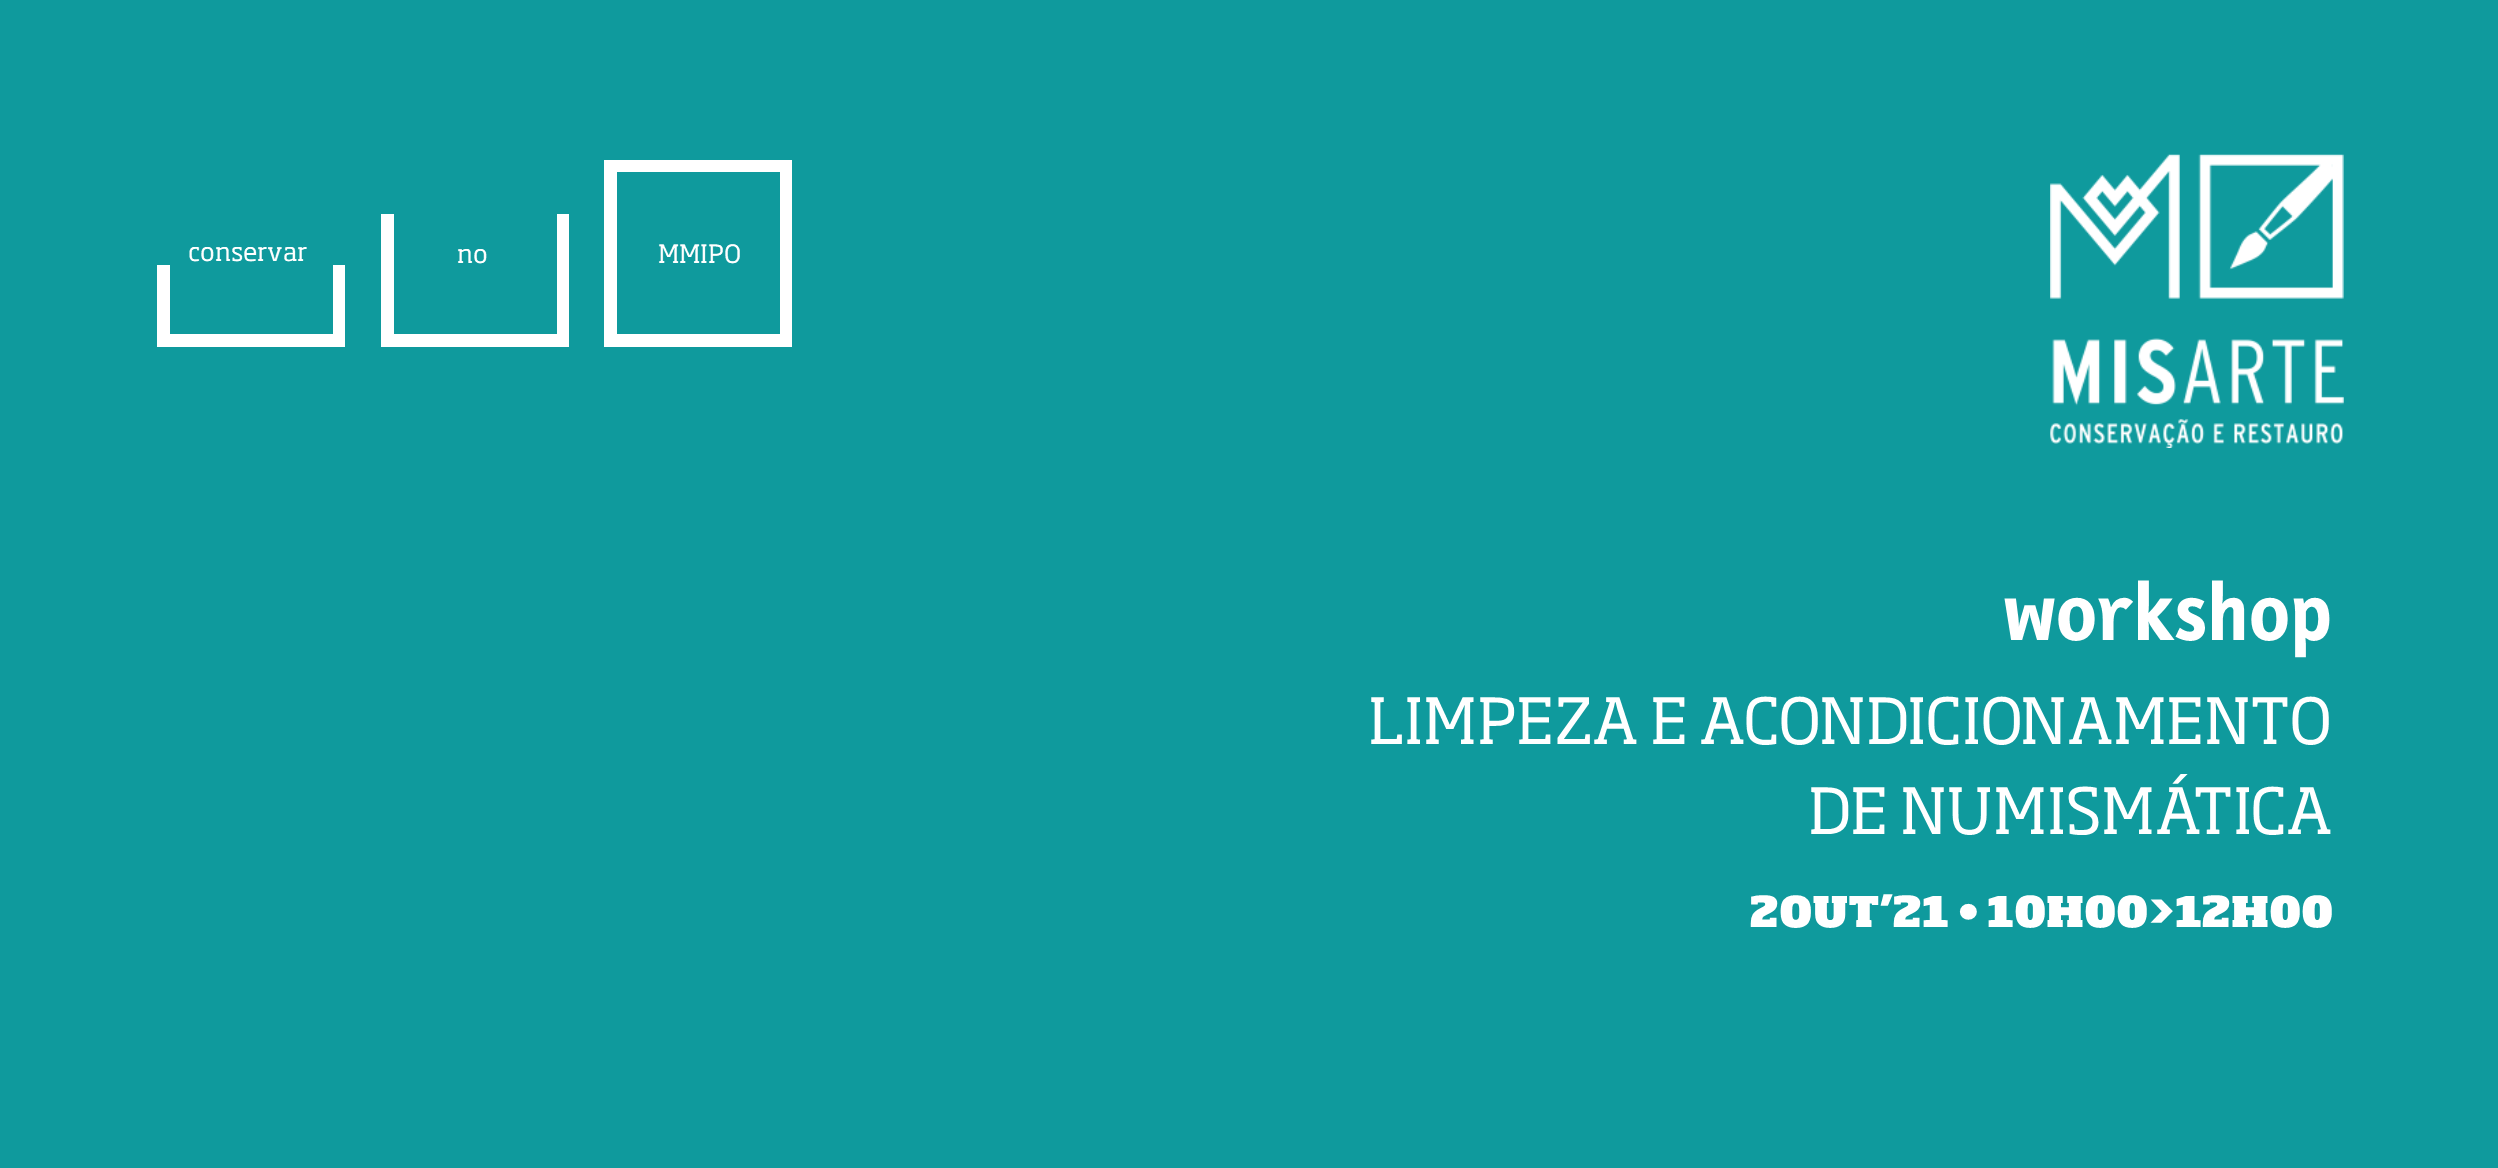 https://www.mmipo.pt/assets/misc/Not%C3%ADcias/2021/2021-10-02%20Workshop%20Numism%C3%A1tica/banner.png